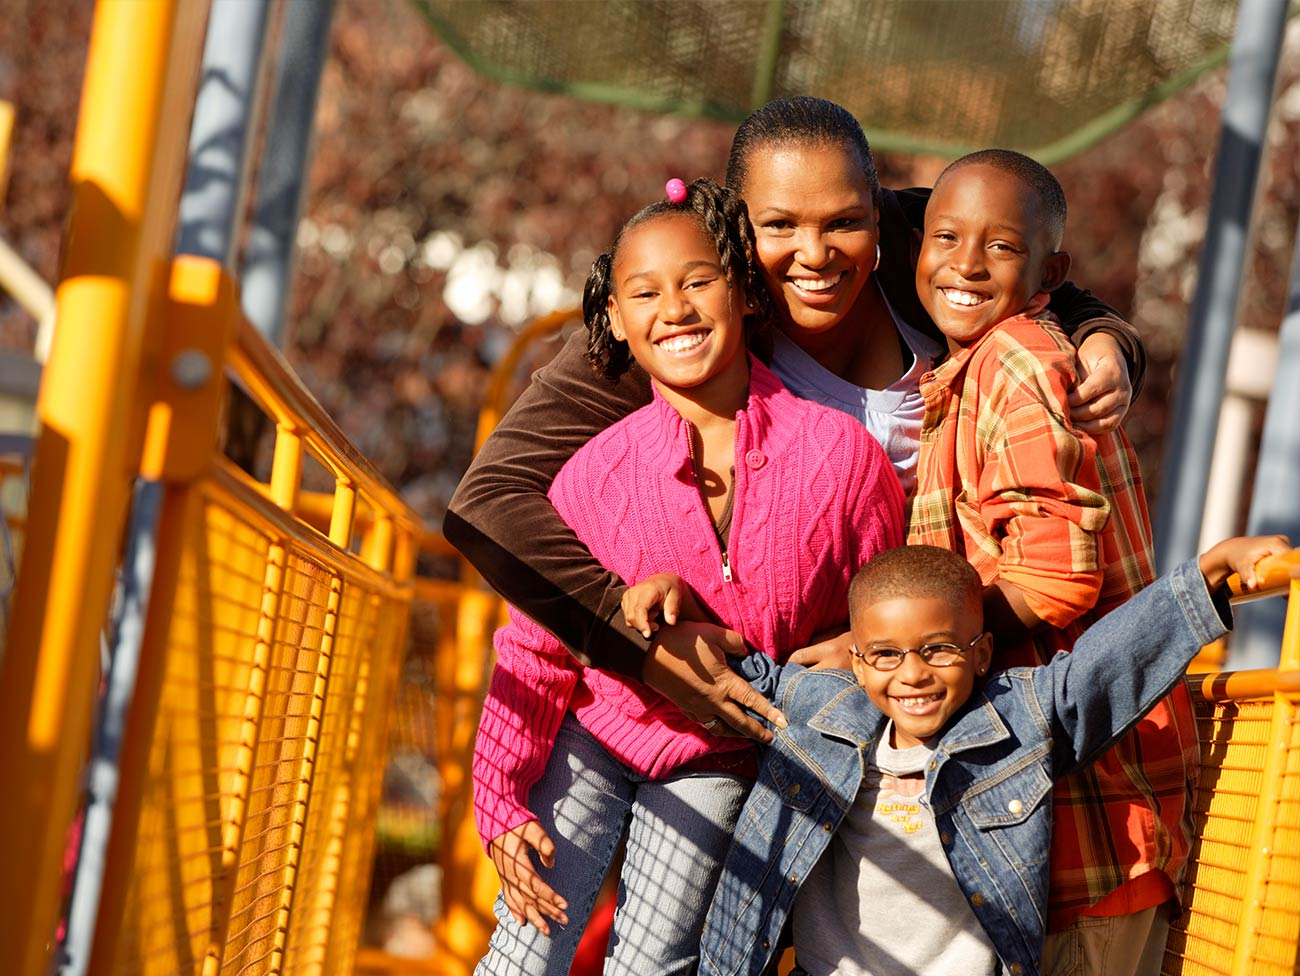 African American woman and her kids on a yellow bridge